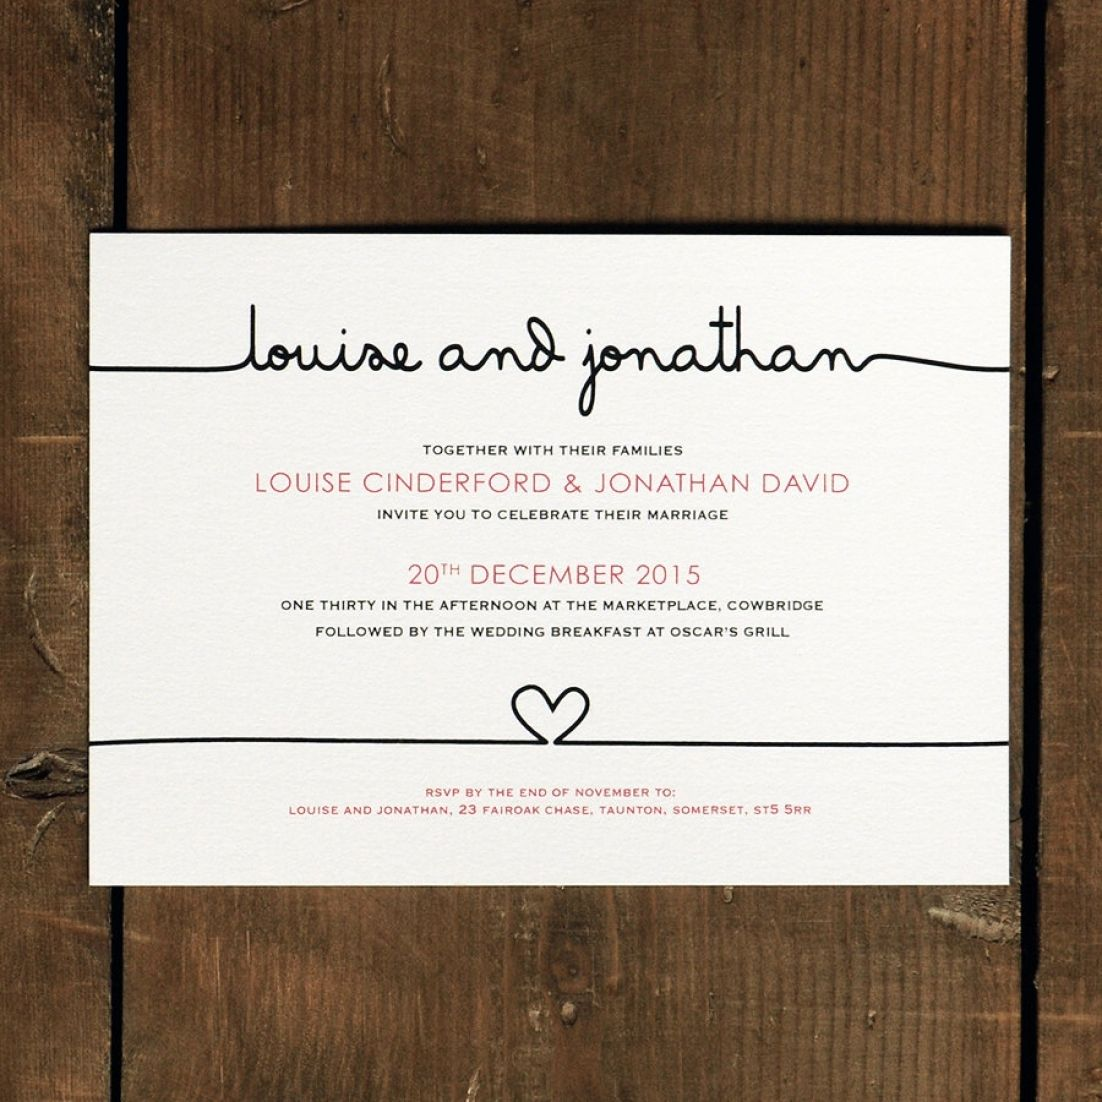 Scribble Handwriting Wedding Invitation Set On Luxury Card Modern Wedding Invites Wedding Invitations Uk Wedding Invita Di 2020 Undangan Pernikahan Pernikahan Undangan